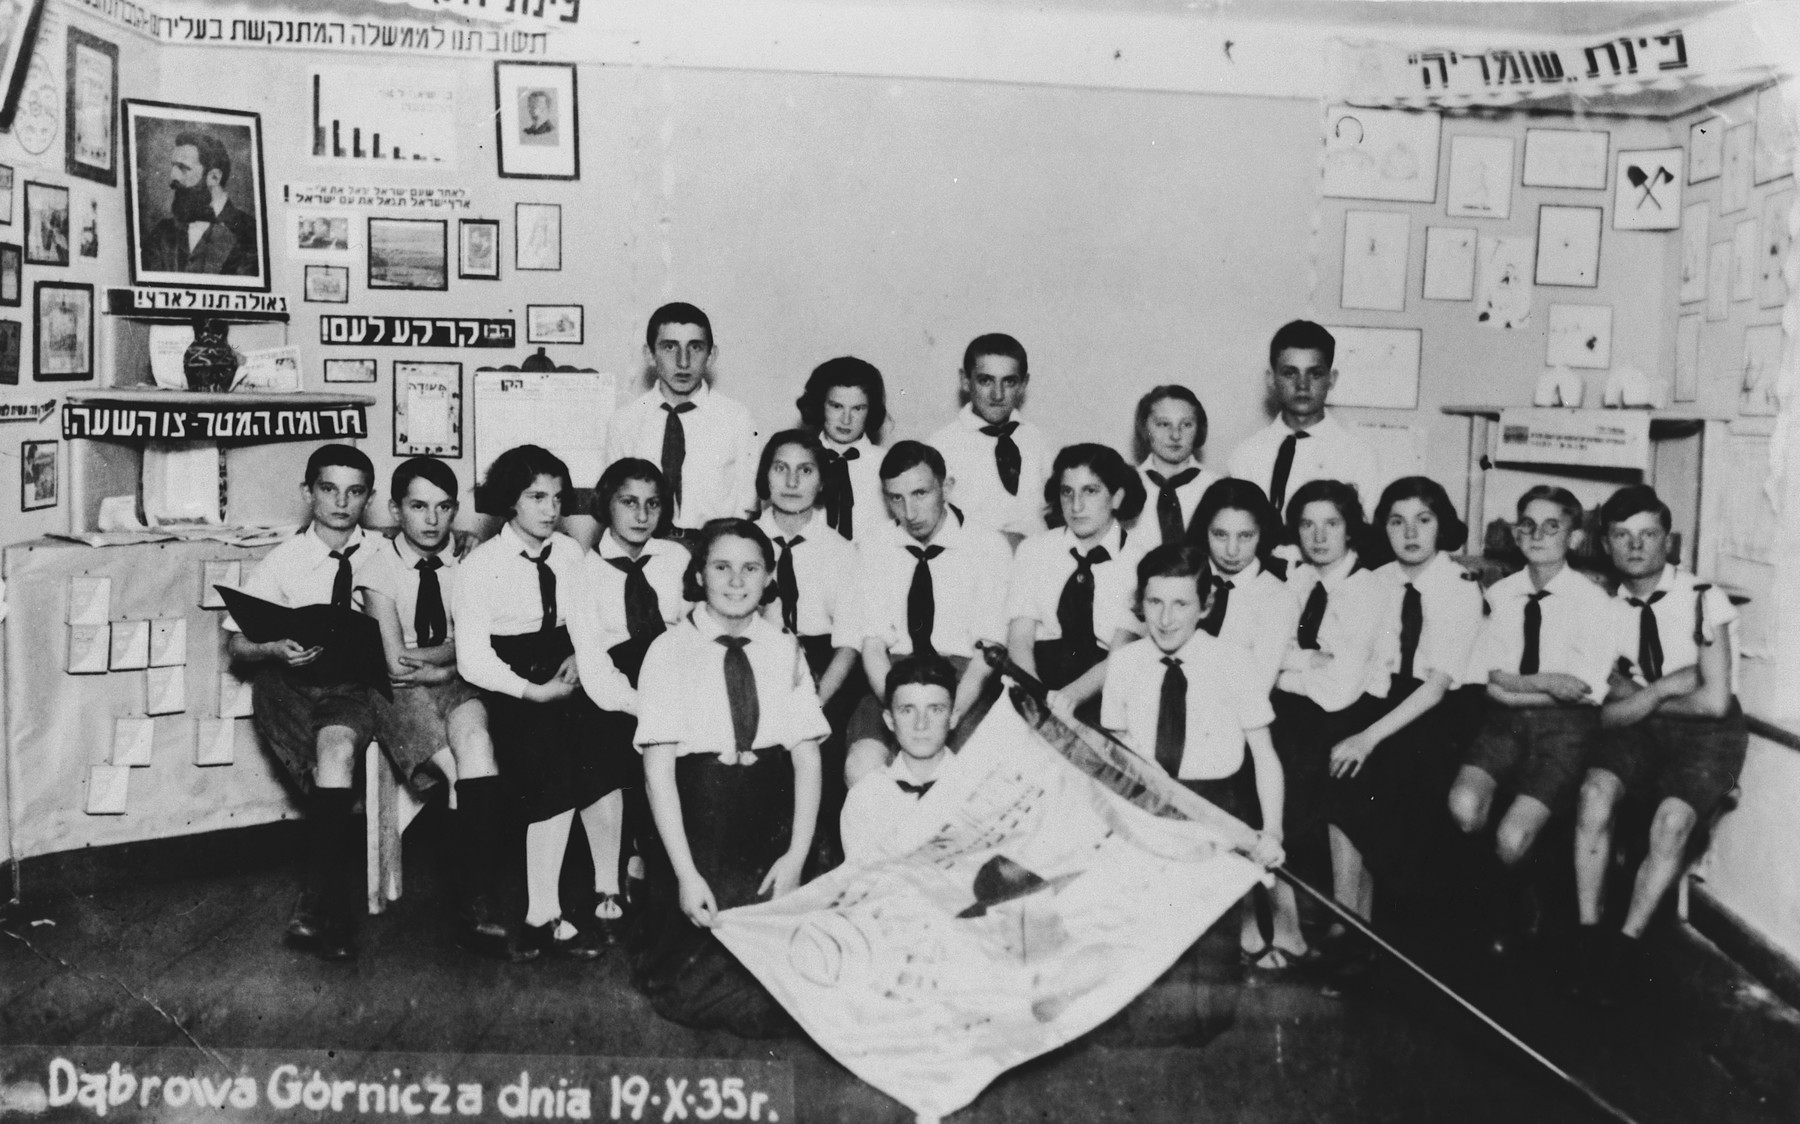 A large group of children from a Zionist youth movement in Dabrowa Gornicza poses in a room decorated with posters and a photograph of Theodore Herzl.